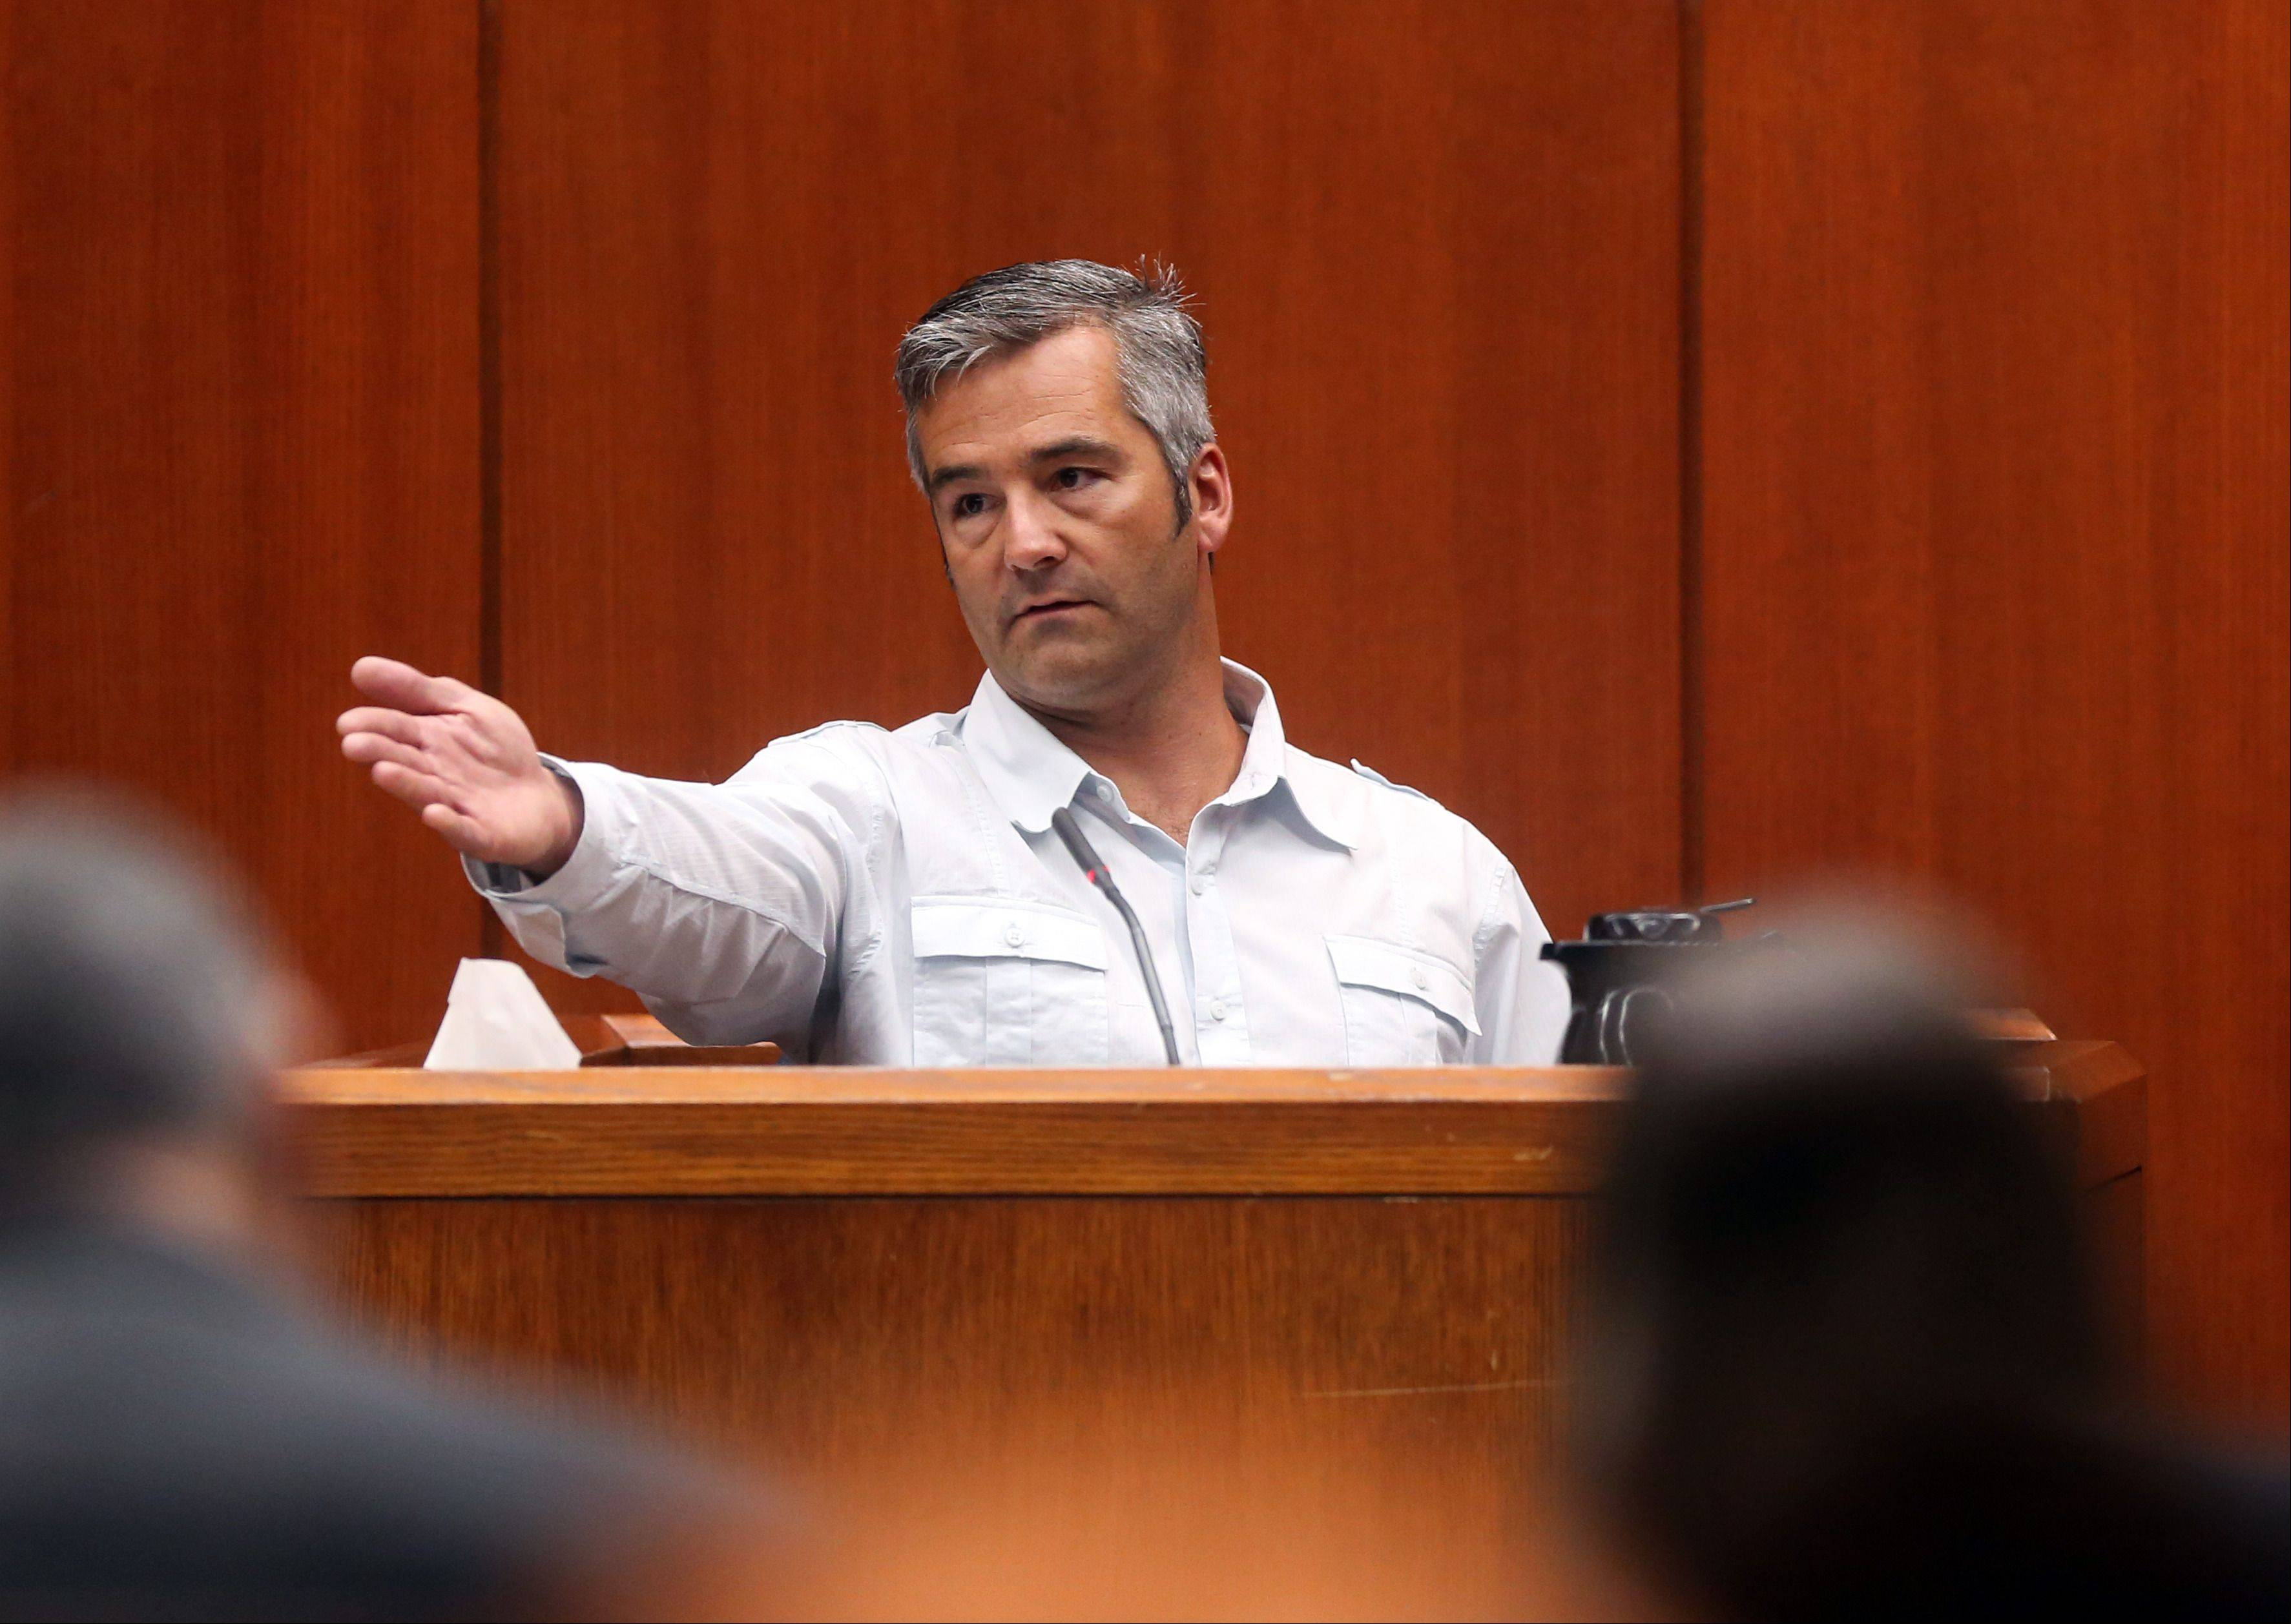 William Svatos, III, the brother of Lori Kramer, points out Johnny Borizov, who is charged with murder, conspiracy and solicitation, during Borizov's trial at the DuPage County Courthouse in Wheaton on Friday.